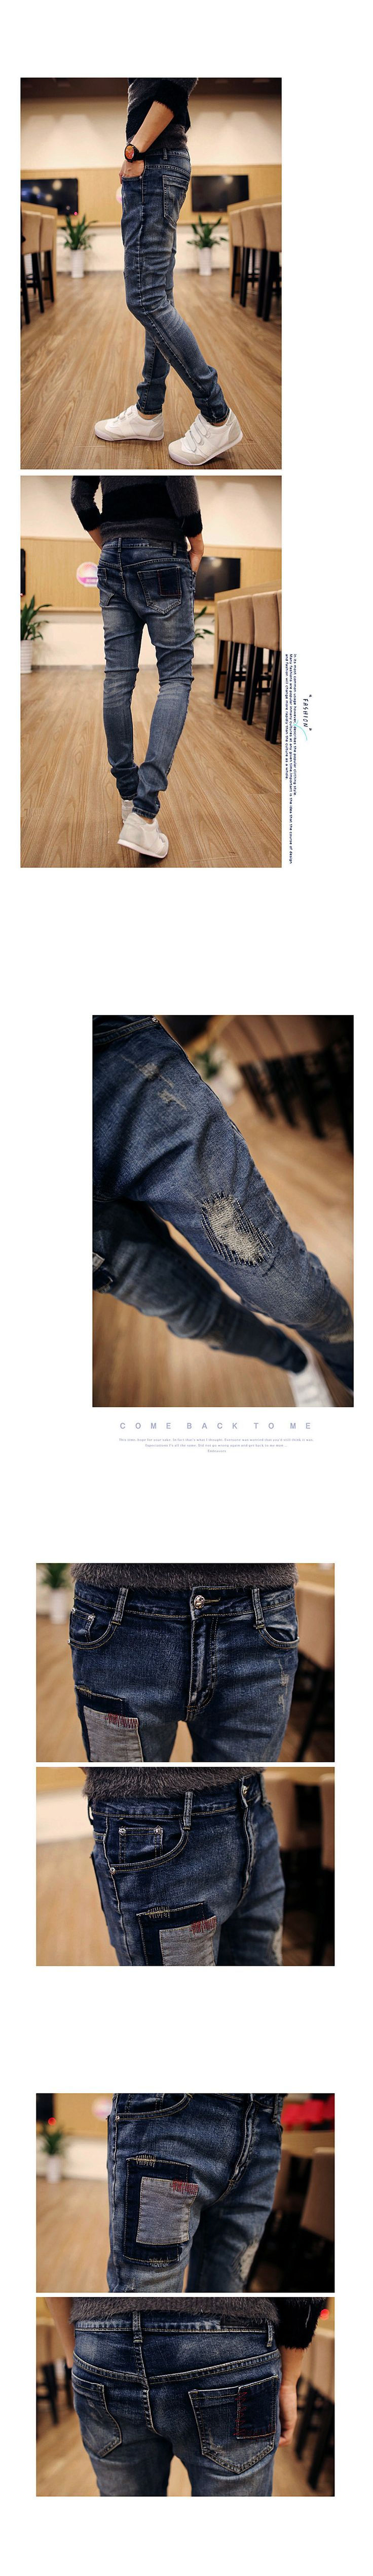 CANIS Fashion male Ripped skinny jeans men Biker Jeans Destroyed Frayed Slim Fit Denim Pants jean homme-in Jeans